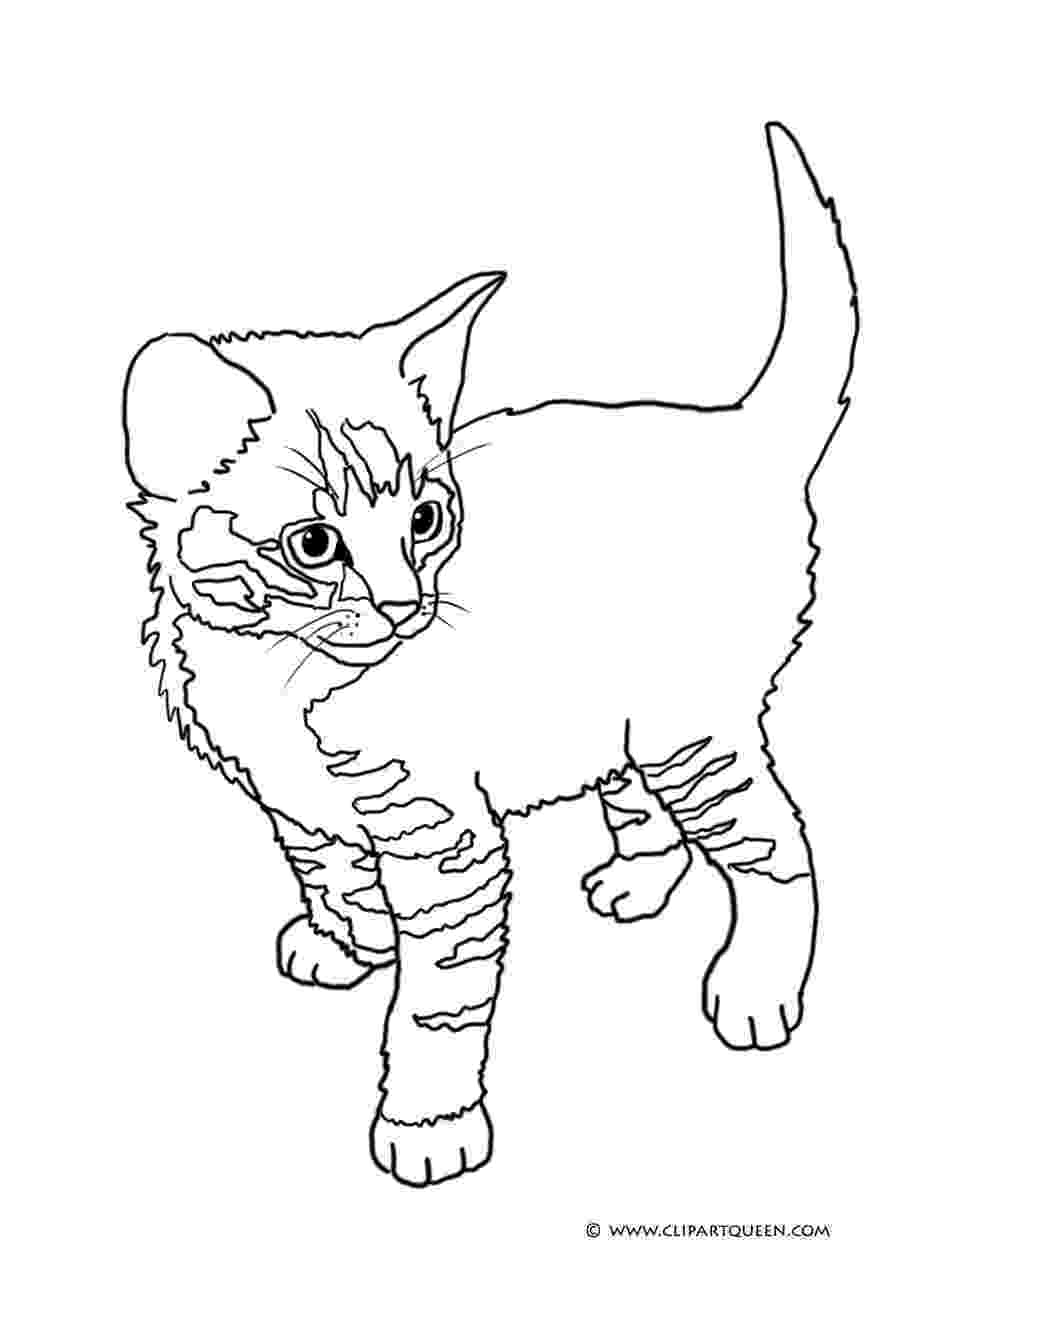 coloring pages of kittens kitten meowing coloring page free printable coloring pages of kittens coloring pages